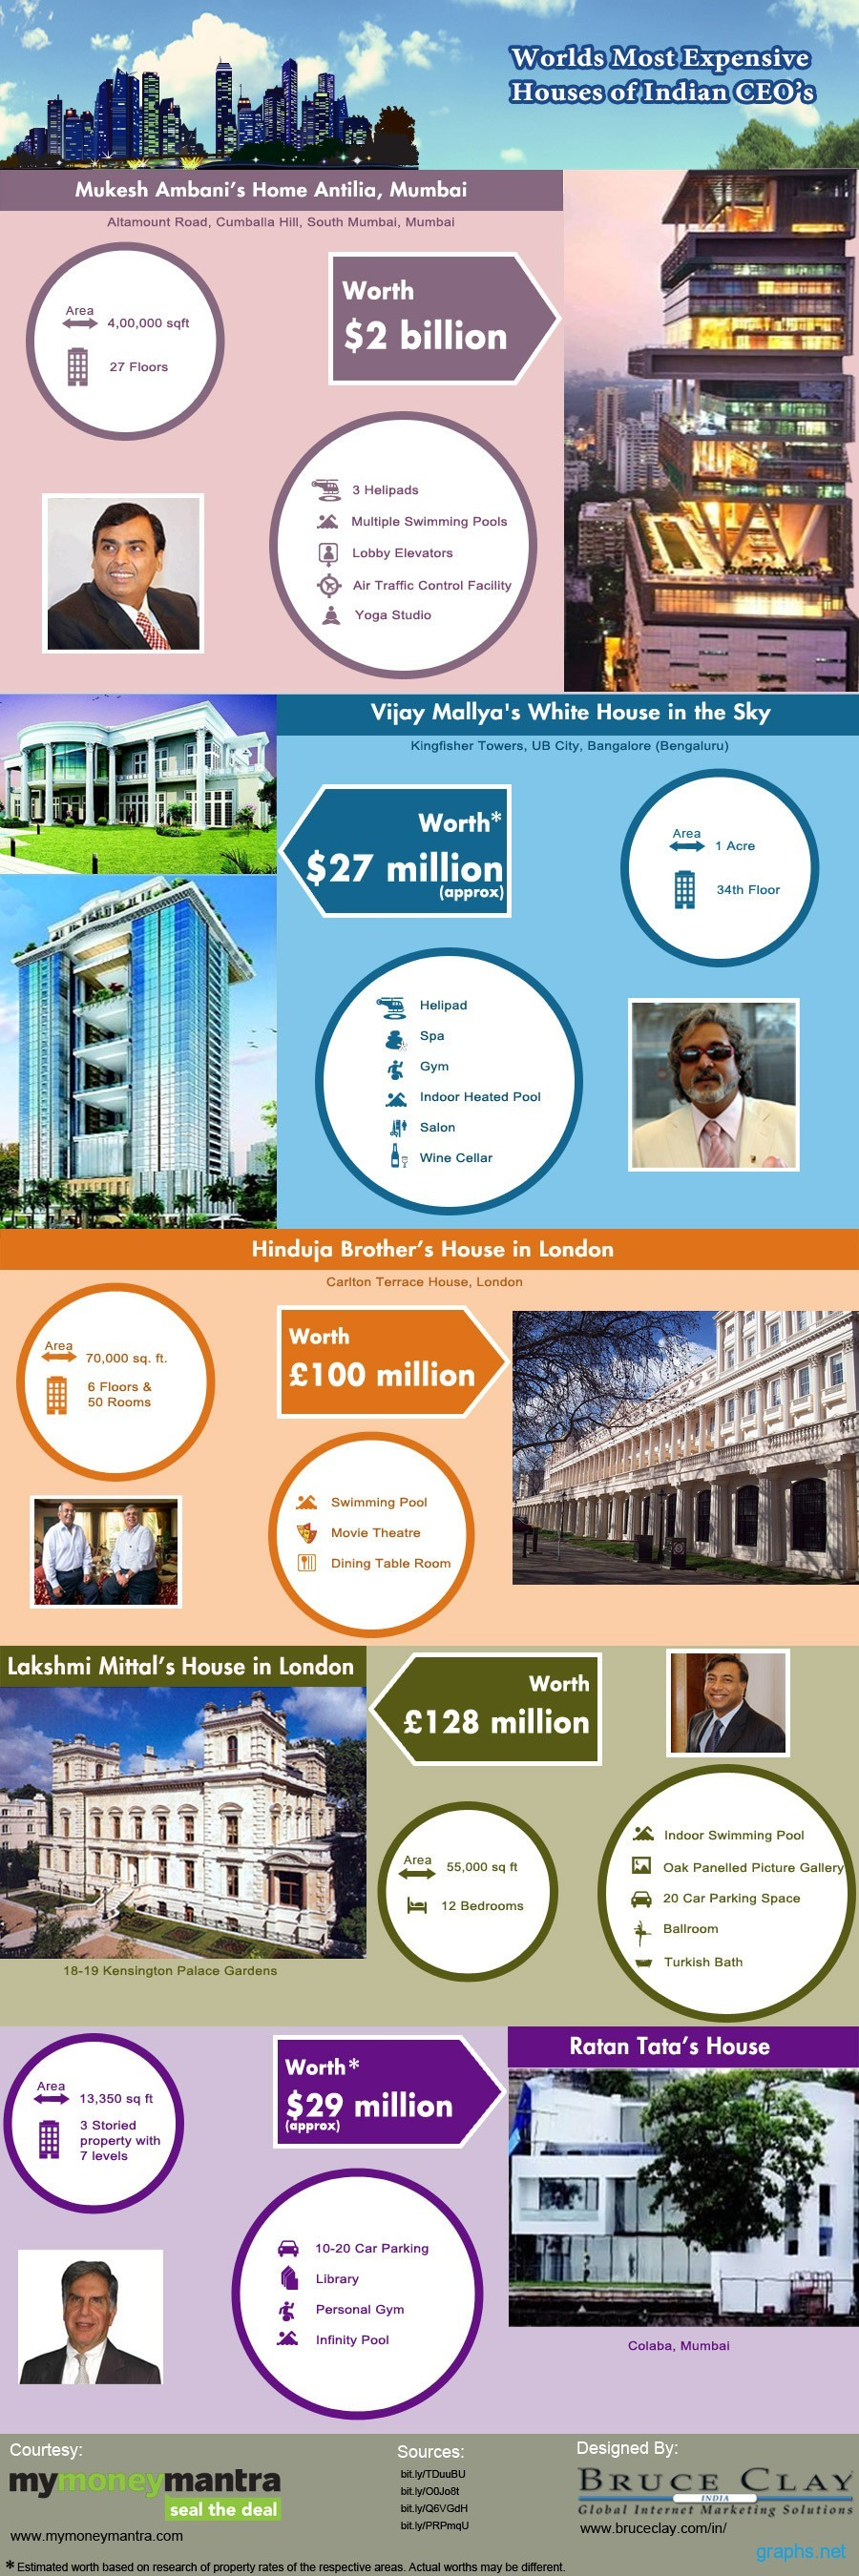 Most Expensive House Of Indians Mukesh Ambani Vijay Mallya Ratan Tata Expensive Houses Most Expensive Expensive